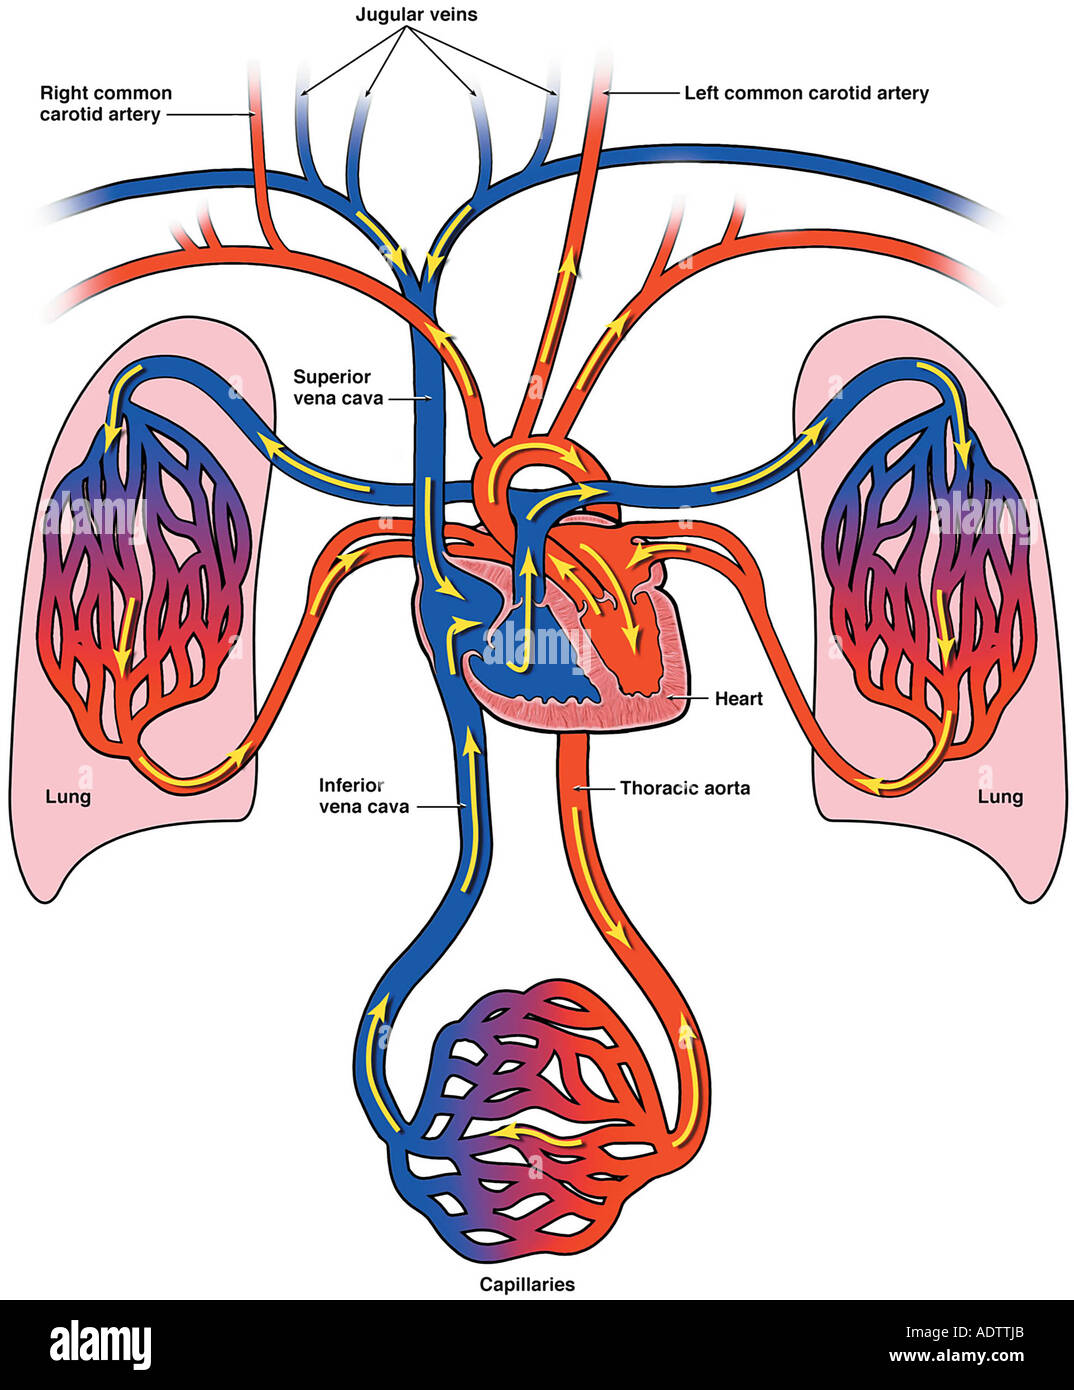 Diagram of blood flow in heart lungs and body electrical work diagram of bloodflow to the heart lungs and body stock photo rh alamy com heart diagram blood flow circulation human heart blood flow diagram ccuart